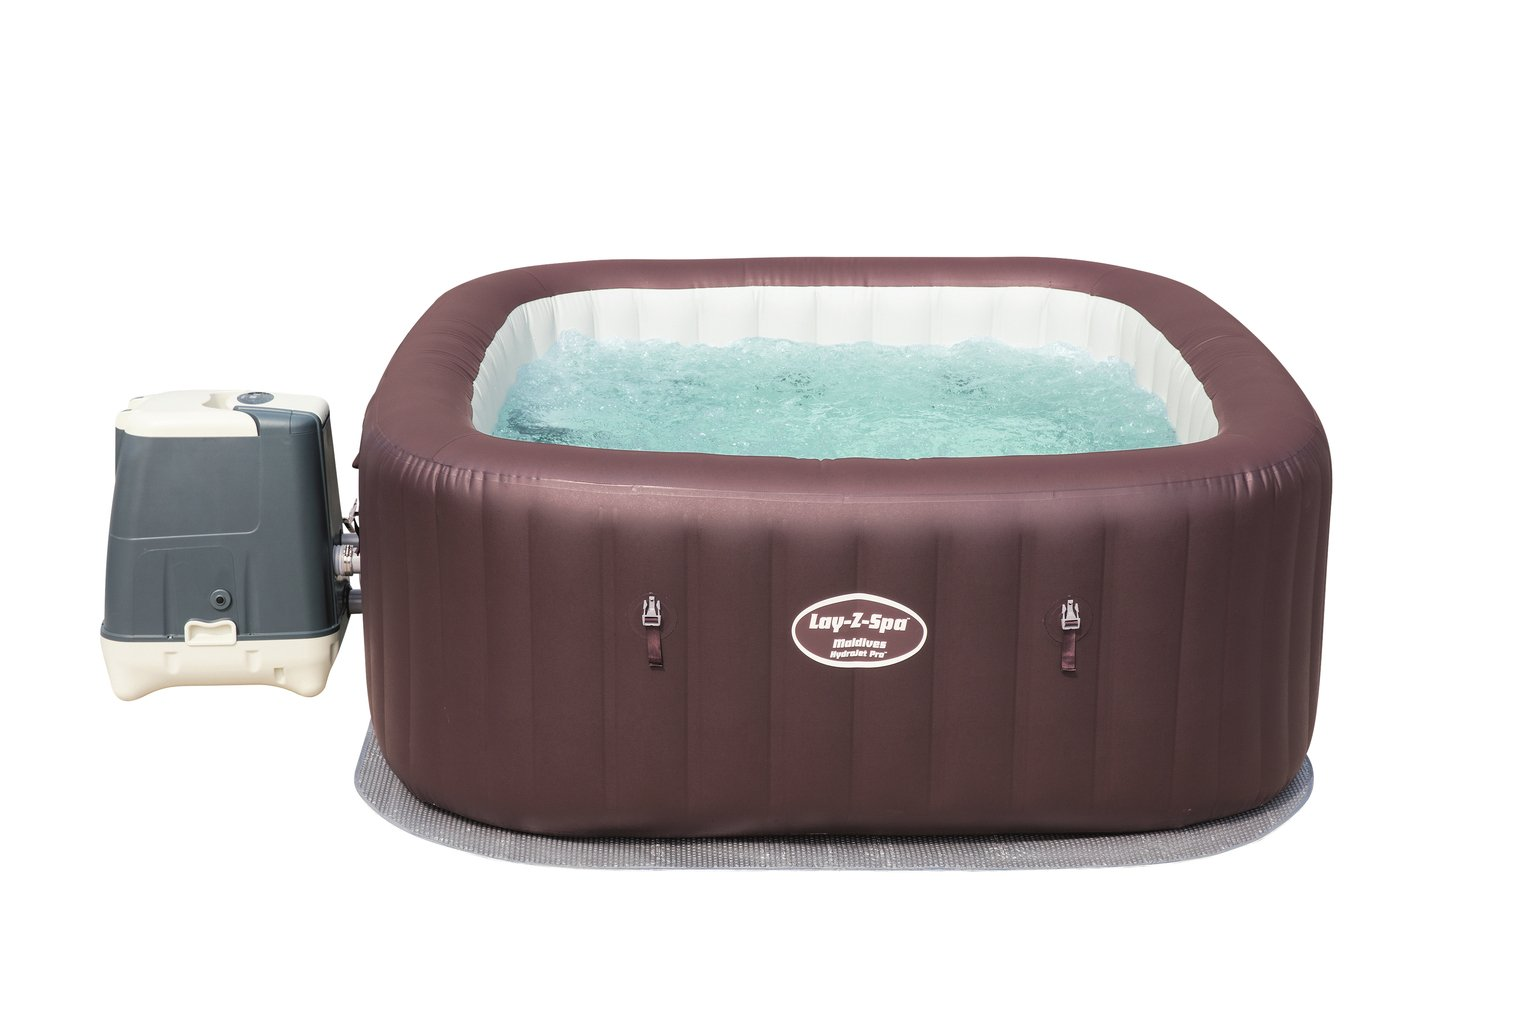 Lay-Z-Spa Maldives 5-7 Person HydroJet Pro Hot Tub